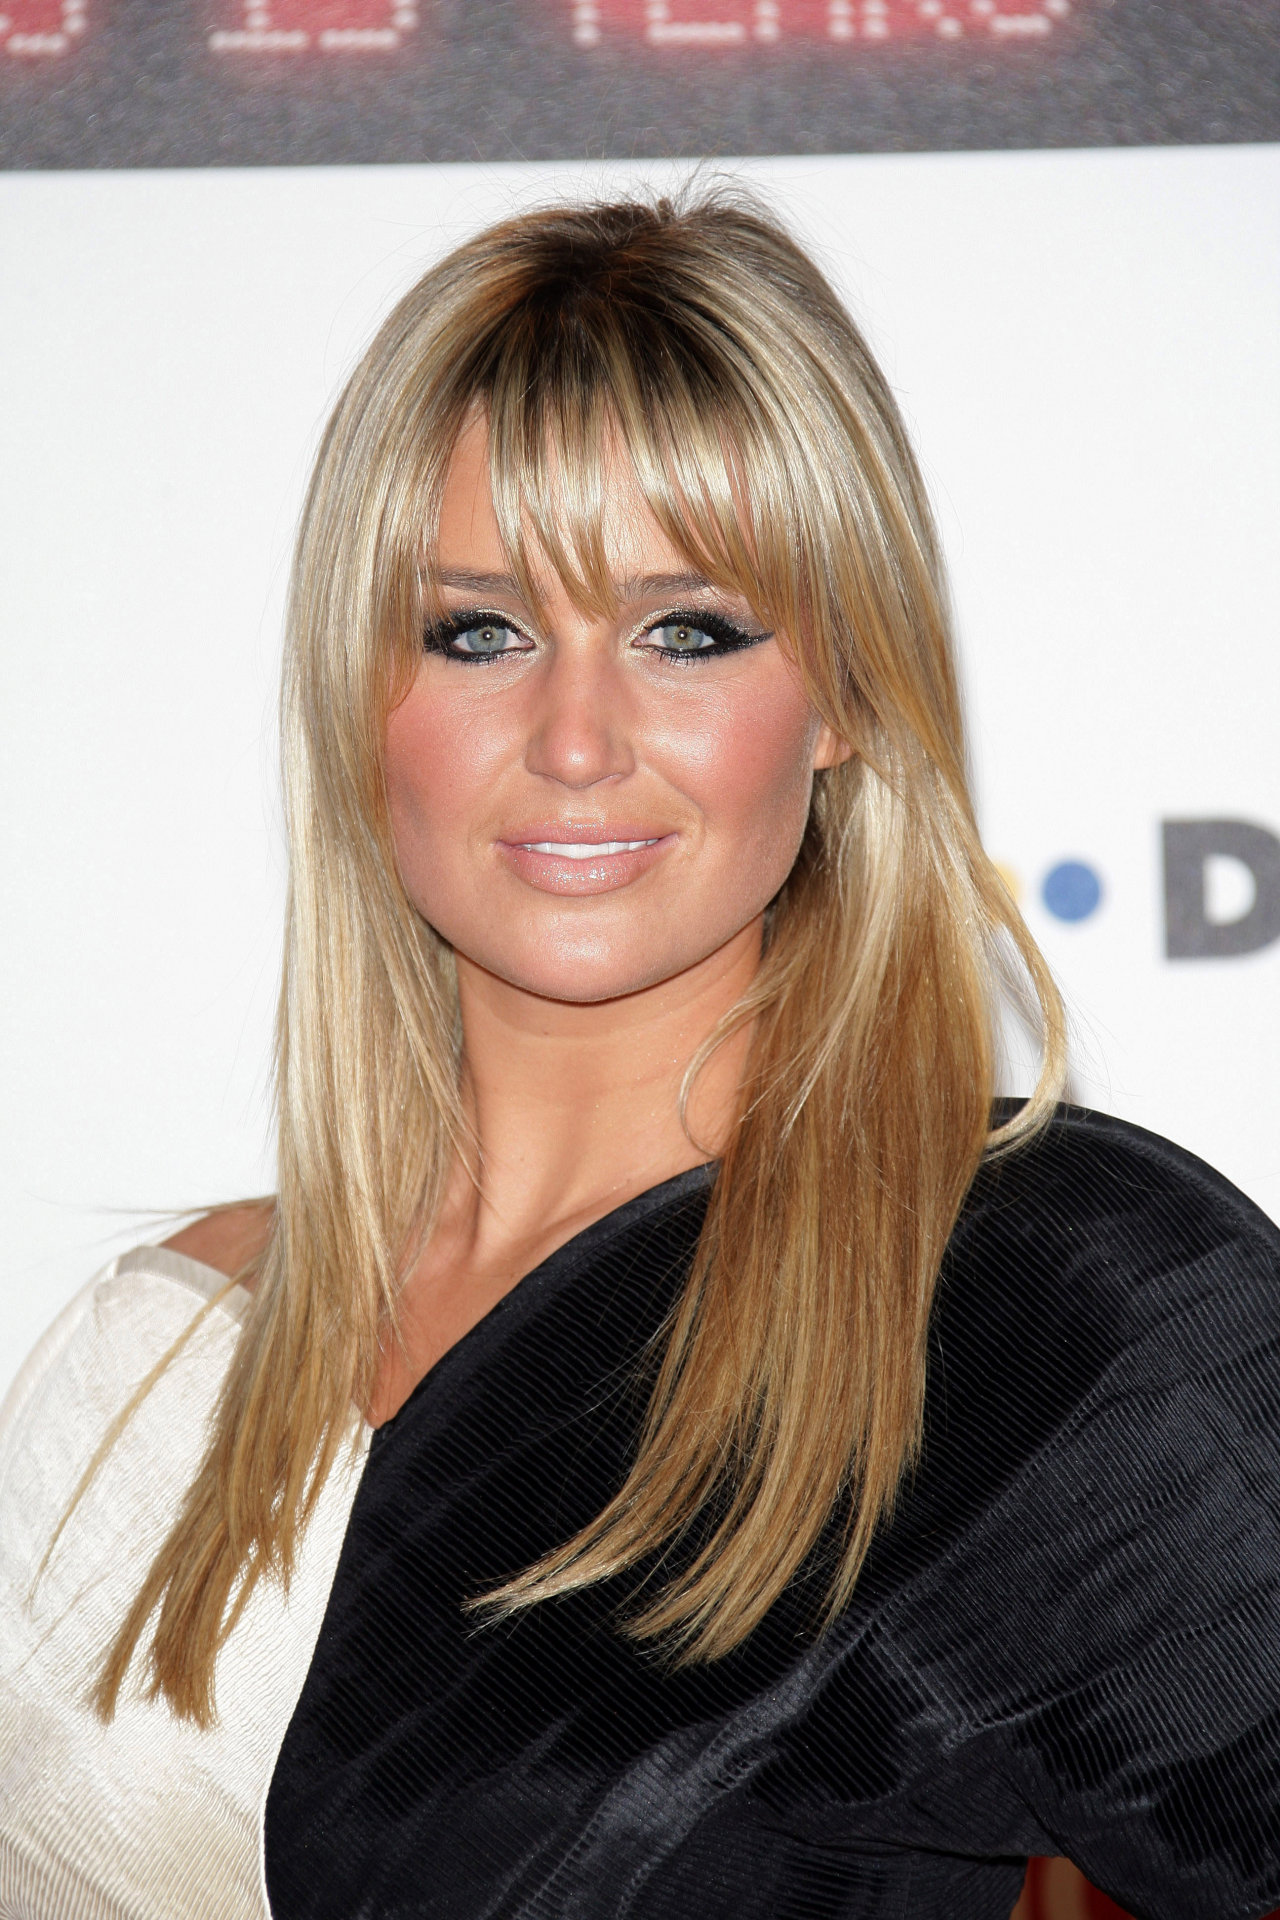 photo alex curran   wallpapers with a celebrity alex curran tk beautiful wide and free